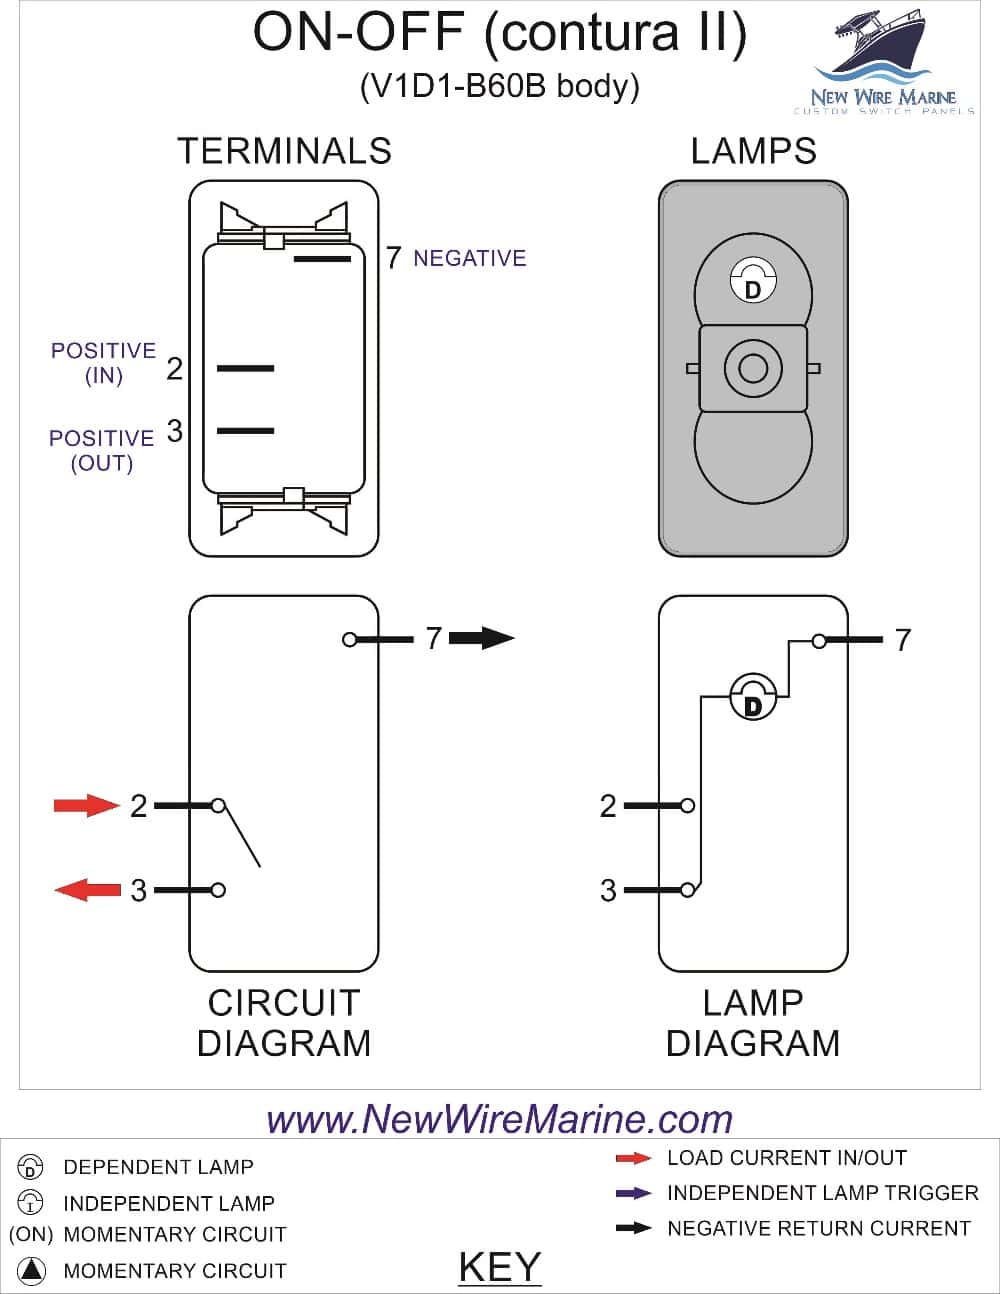 medium resolution of rocker switch wiring diagrams new wire marinecarling v1d1 rocker switch wiring diagram